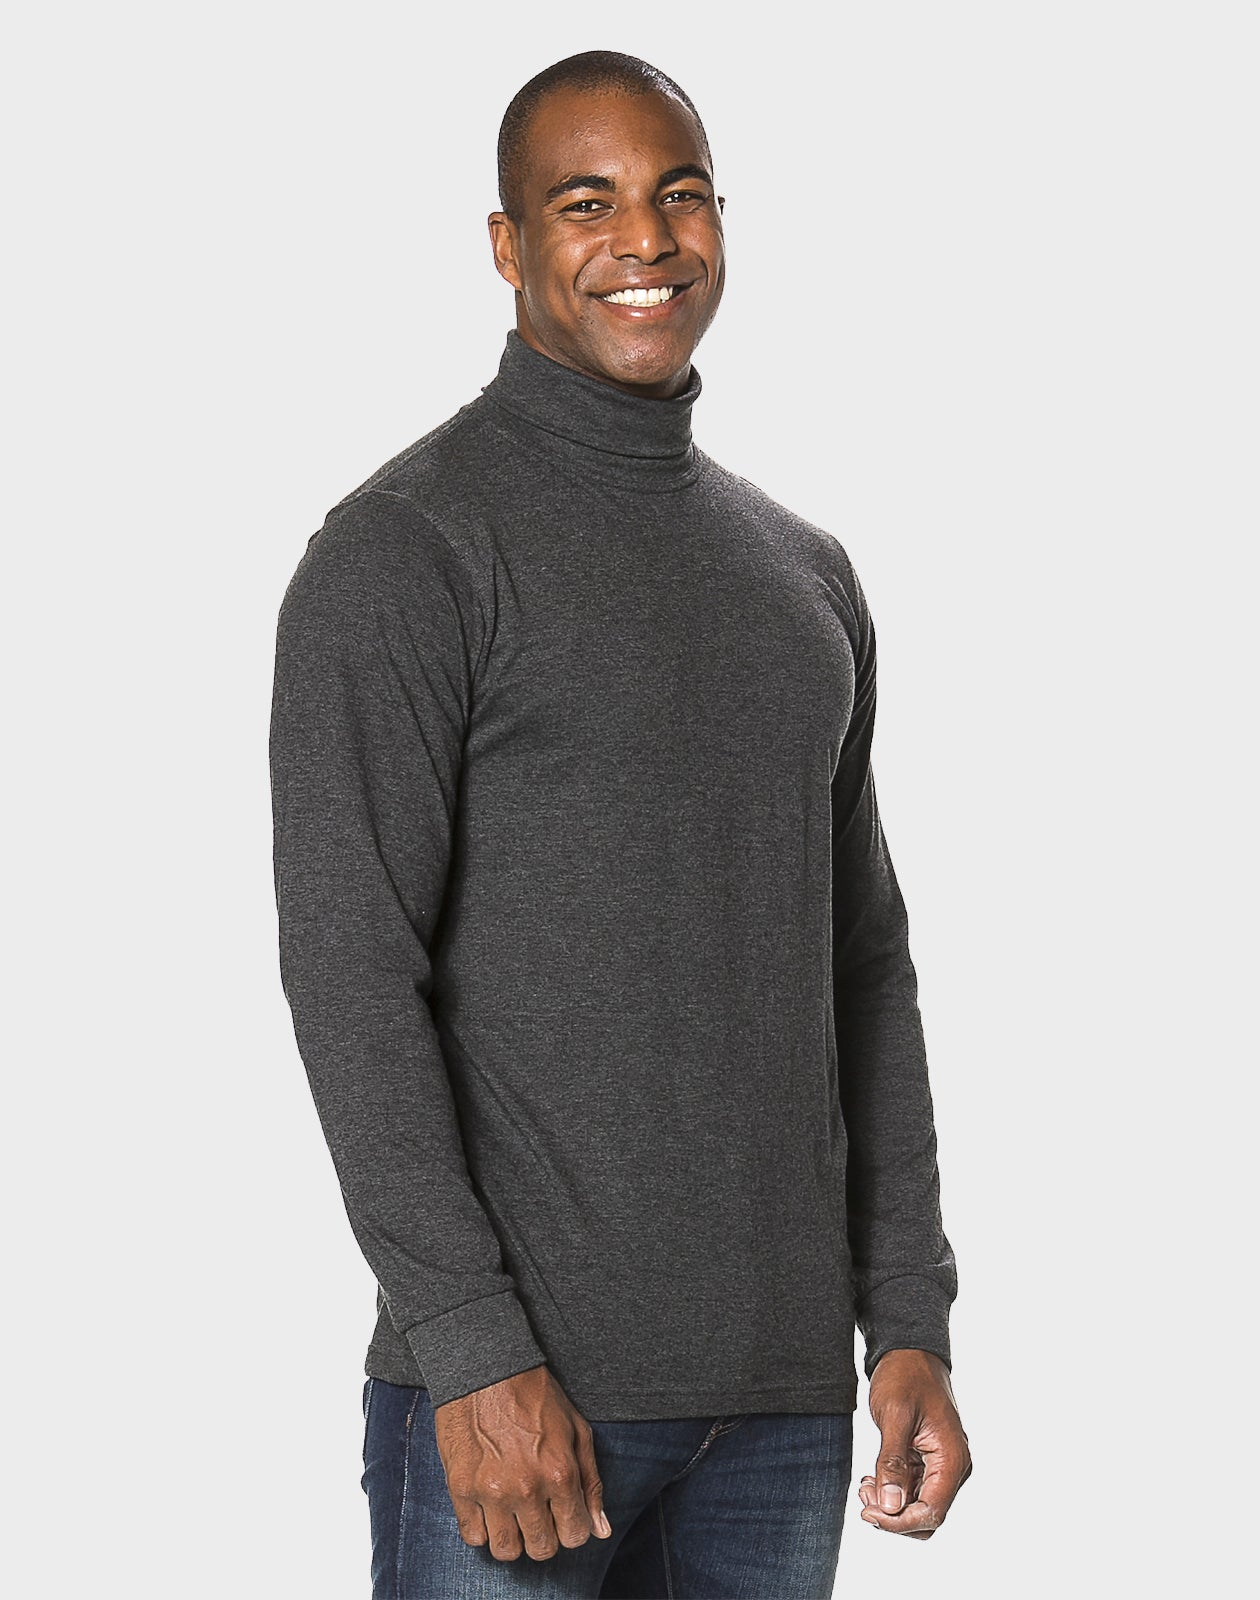 Fitted Fit - Turtle Neck Tee, Antrasit T-shirt - ACC Store